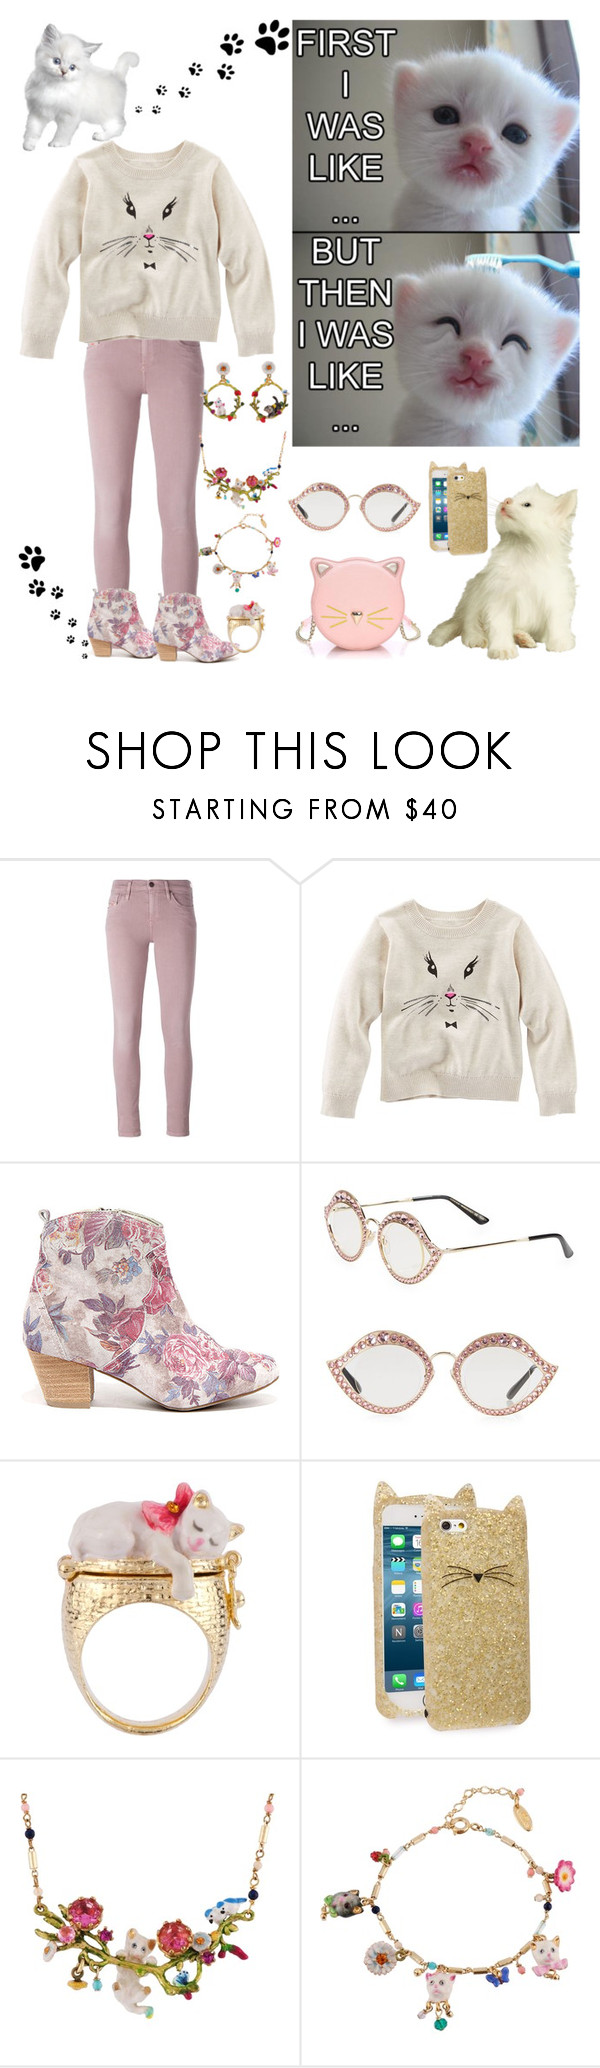 """Kitten Grooming"" by horcal ❤ liked on Polyvore featuring Diesel, Sbicca, Gucci, Les Néréides and Kate Spade"